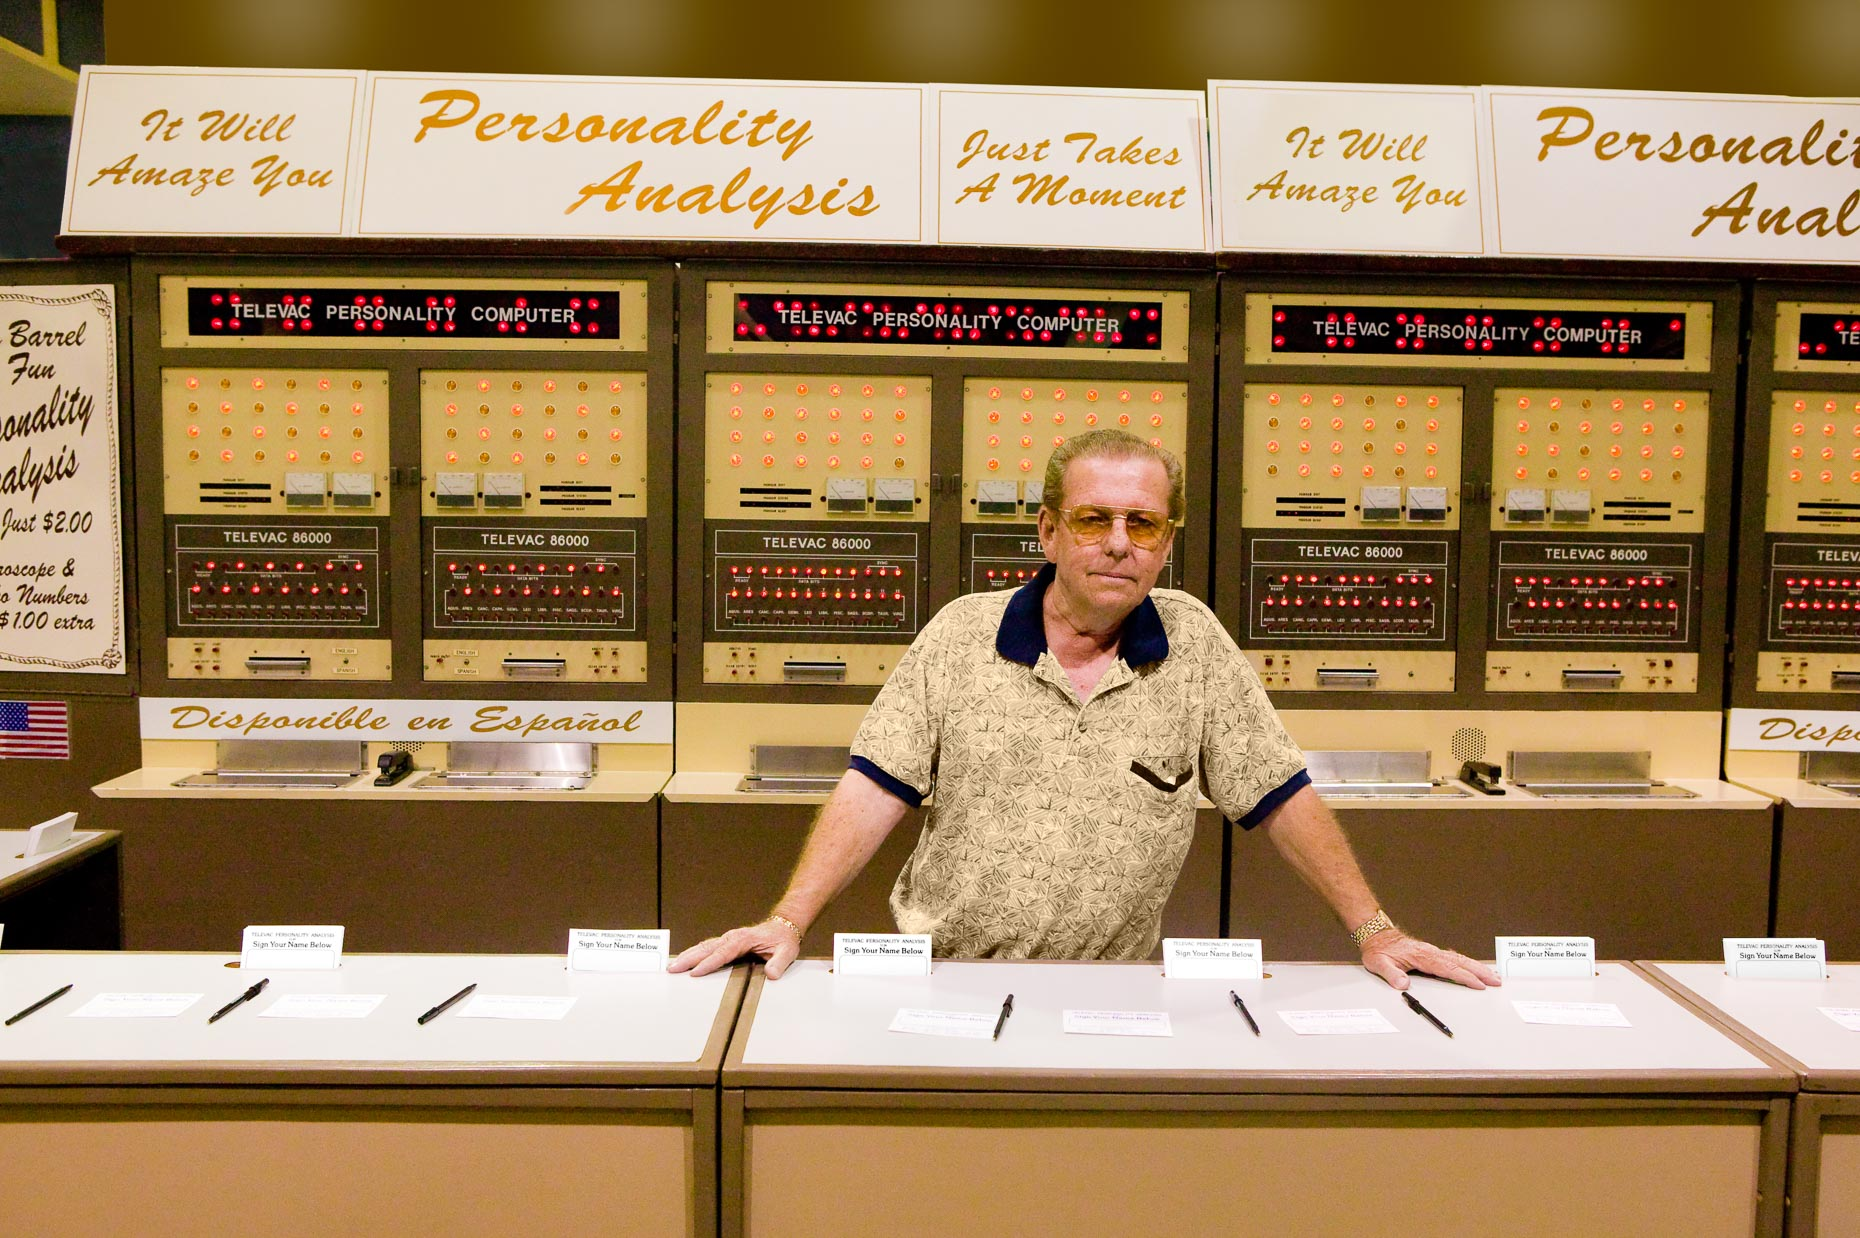 Man standing at counter in front of personality analysis machine computer at Los Angeles County State Fair by David Zaitz